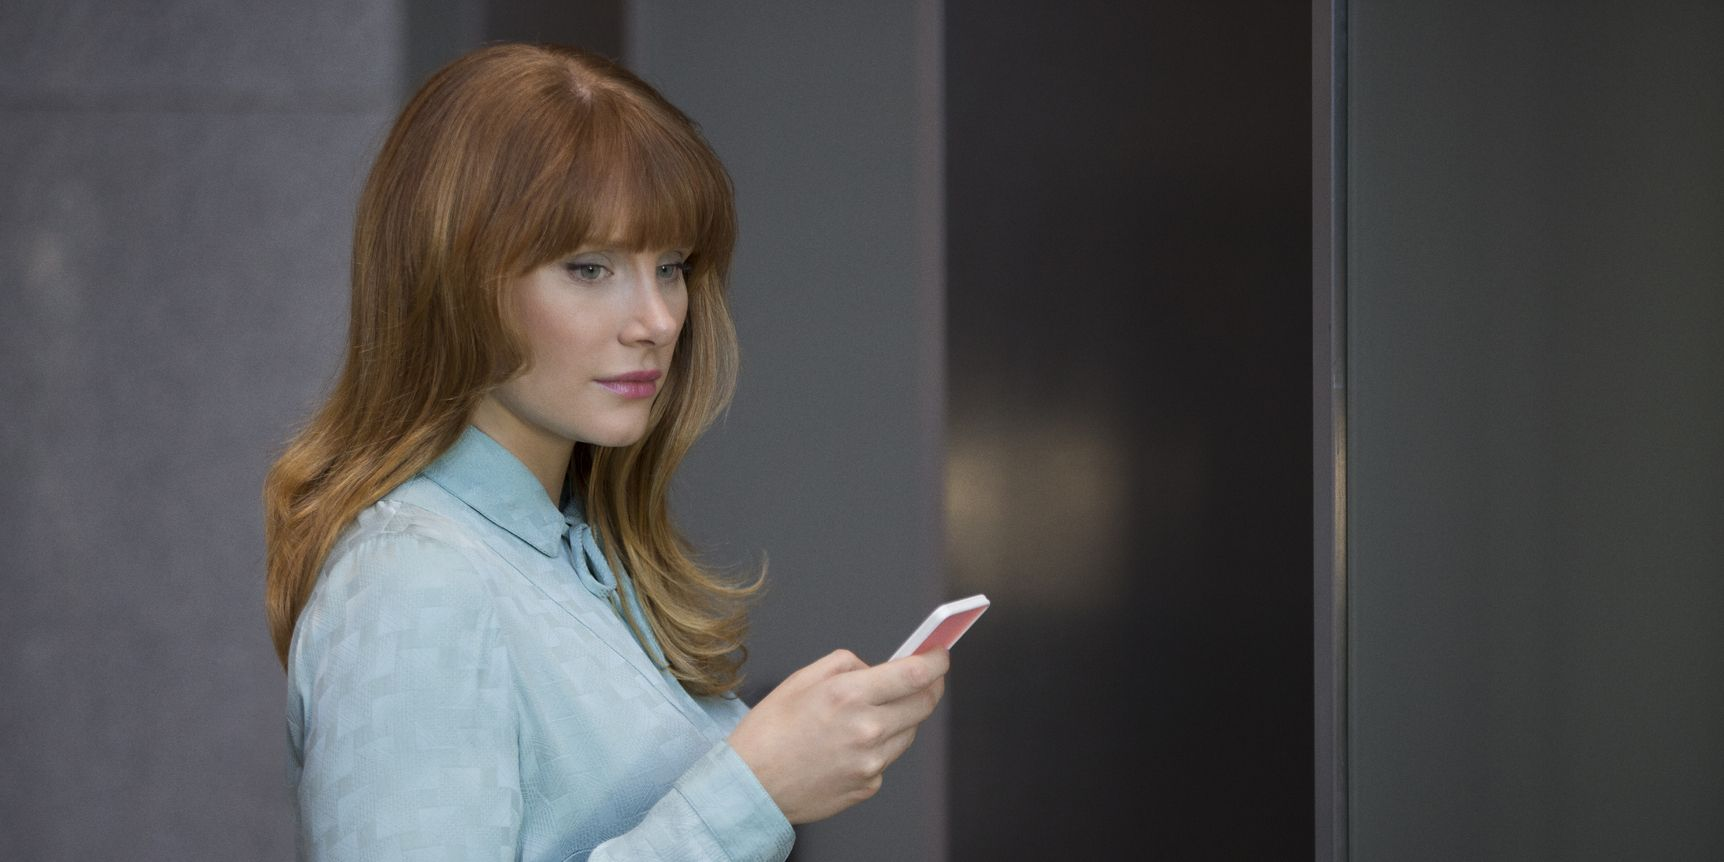 Bryce Dallas Howard in Black Mirror season 3, 'Nosedive'